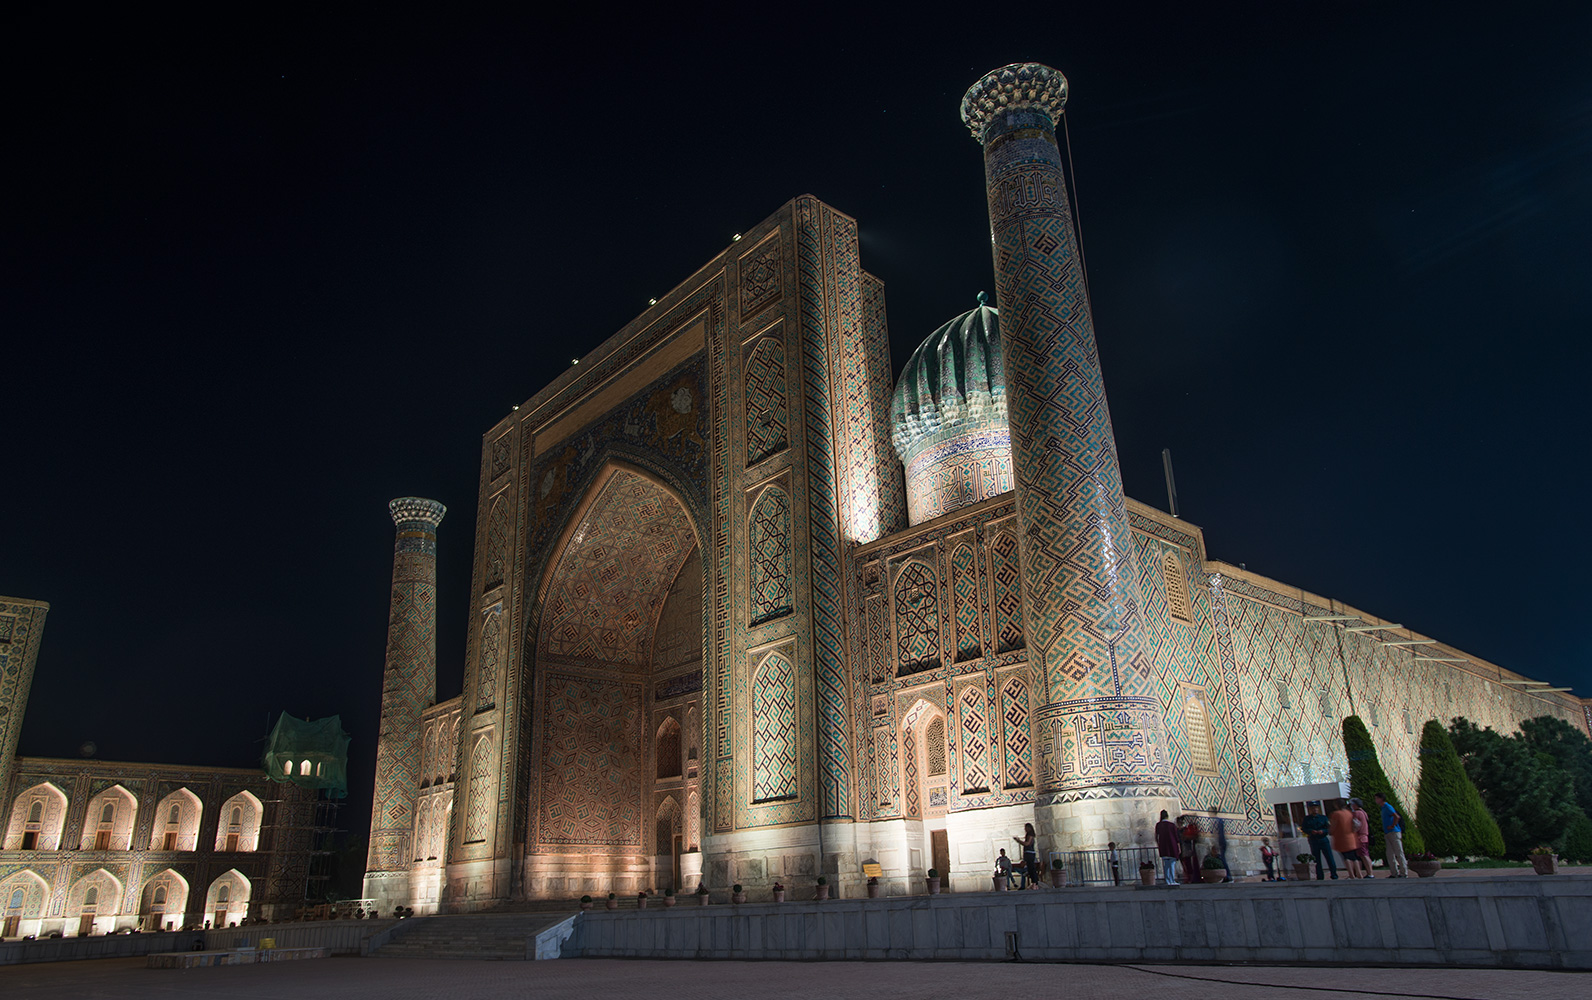 Shir Dor Madrassah at night